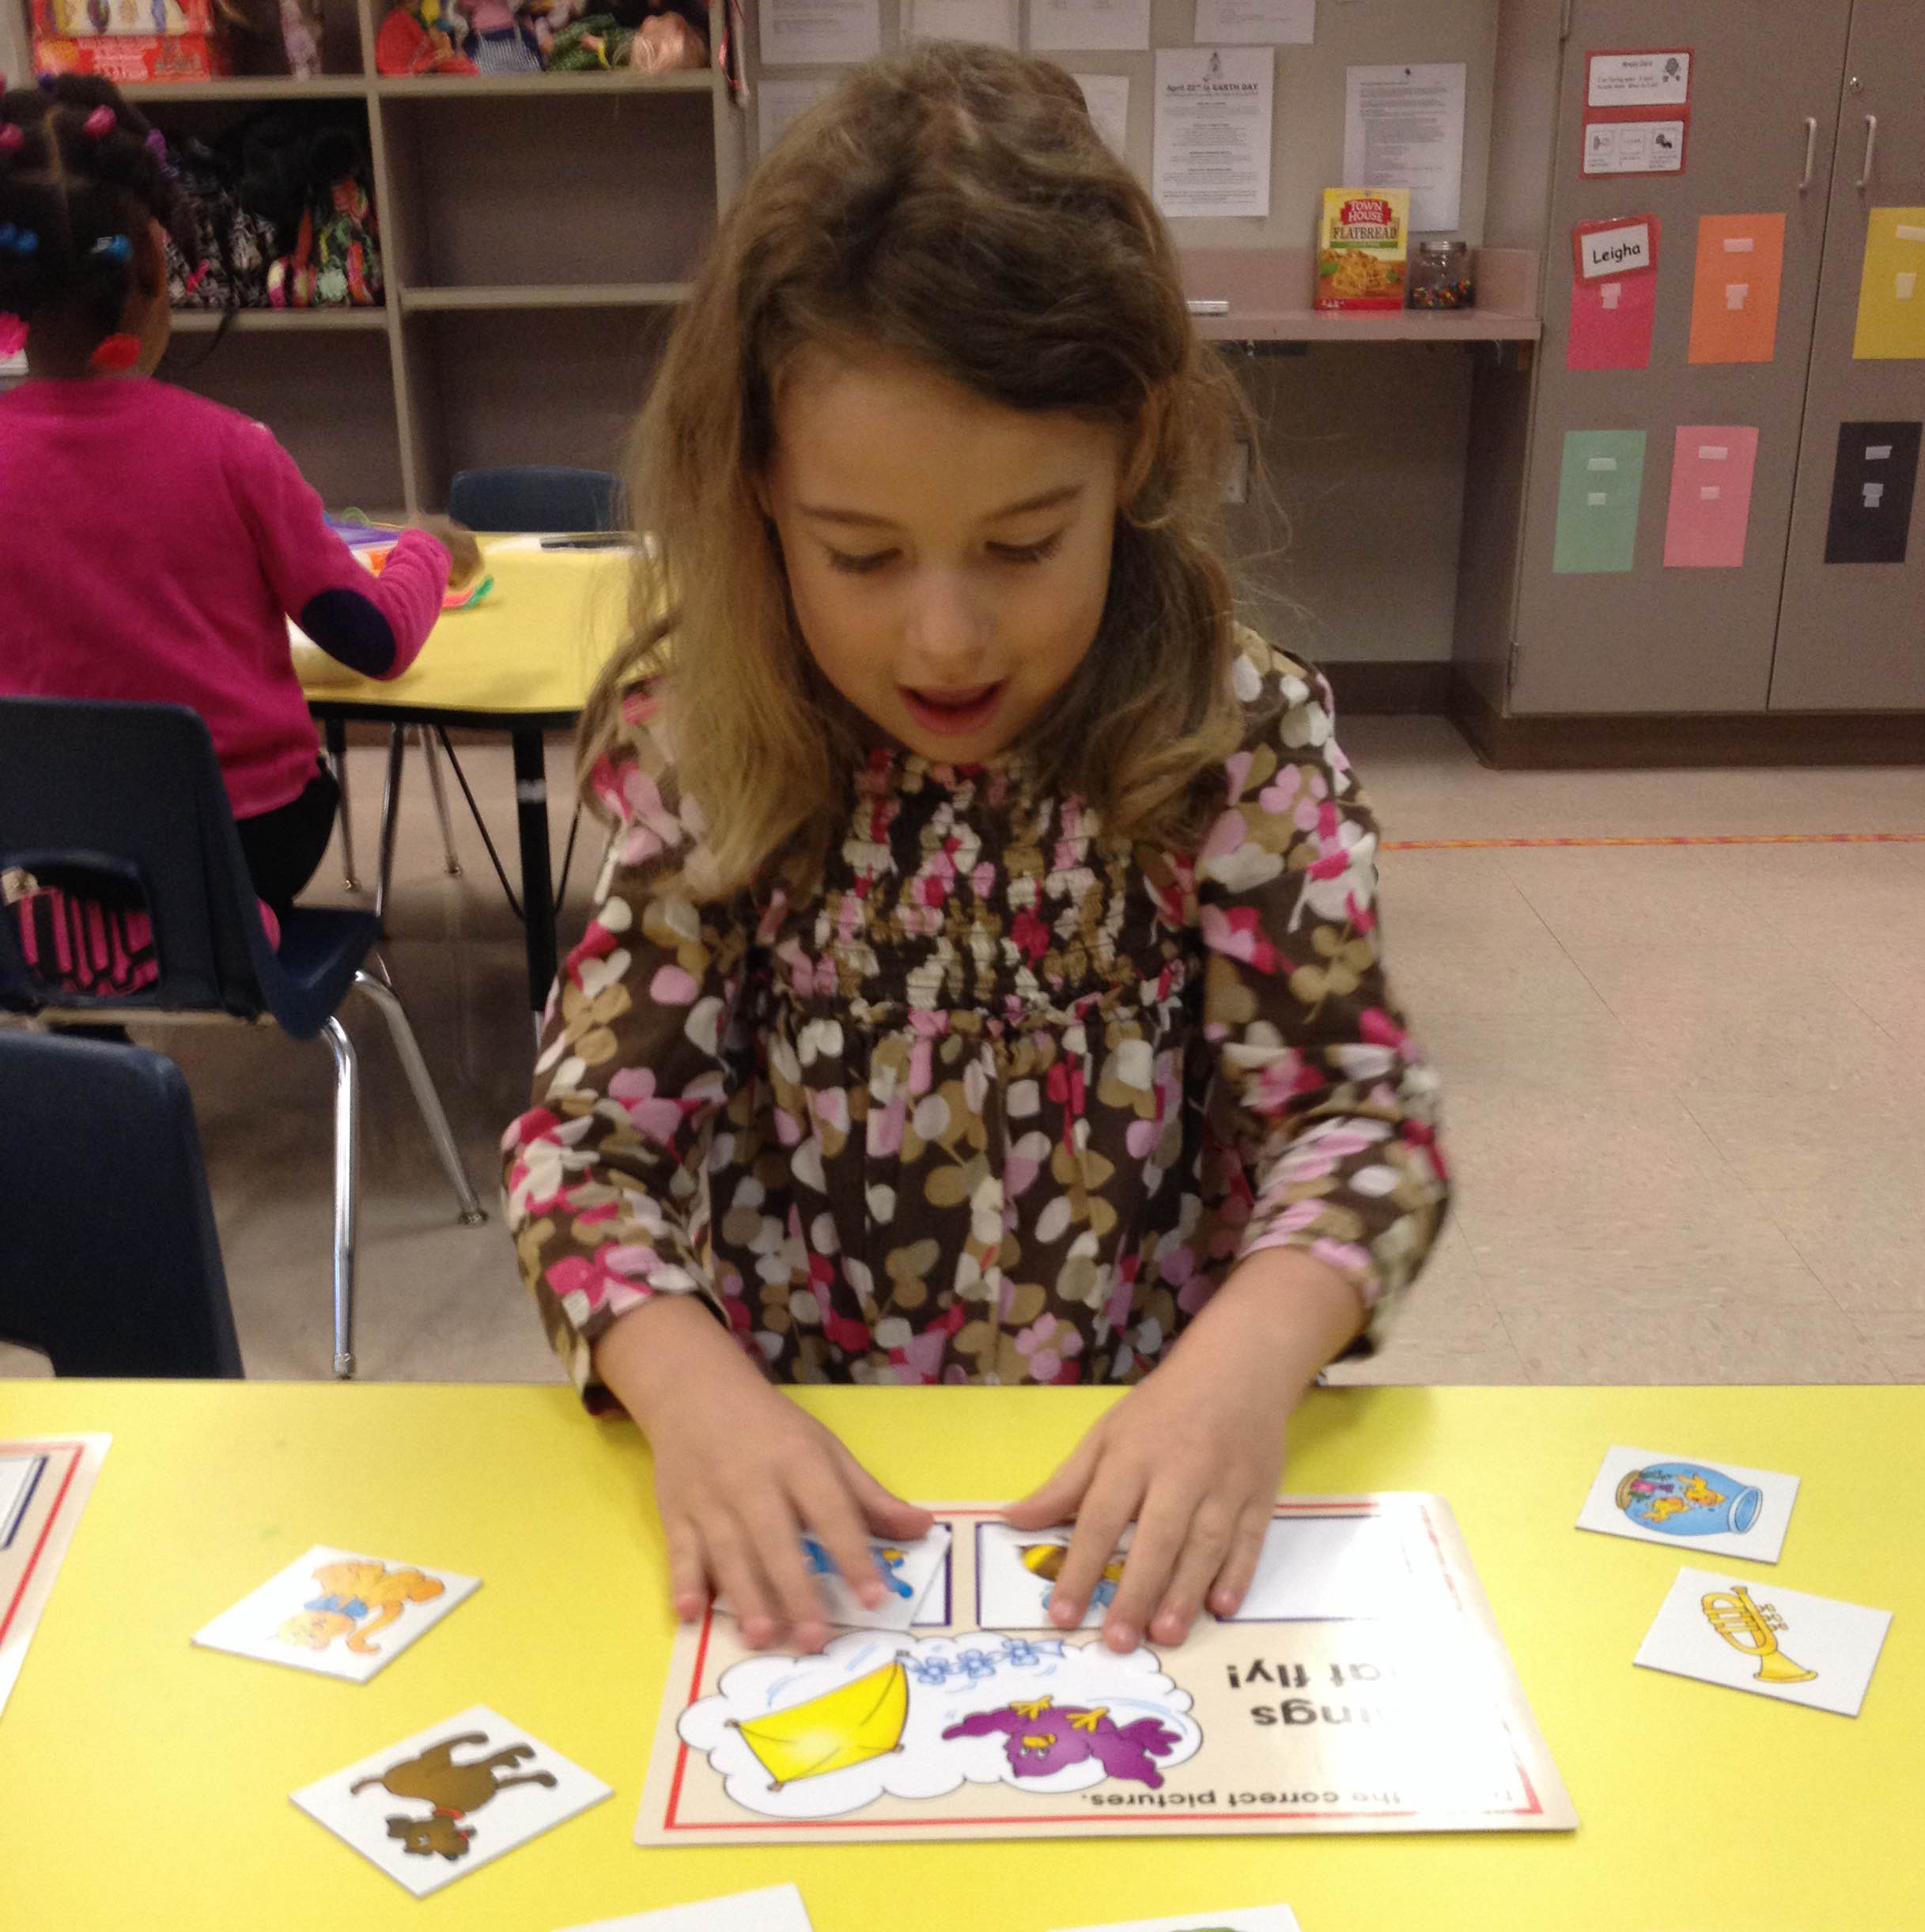 Image of preschool student sorting